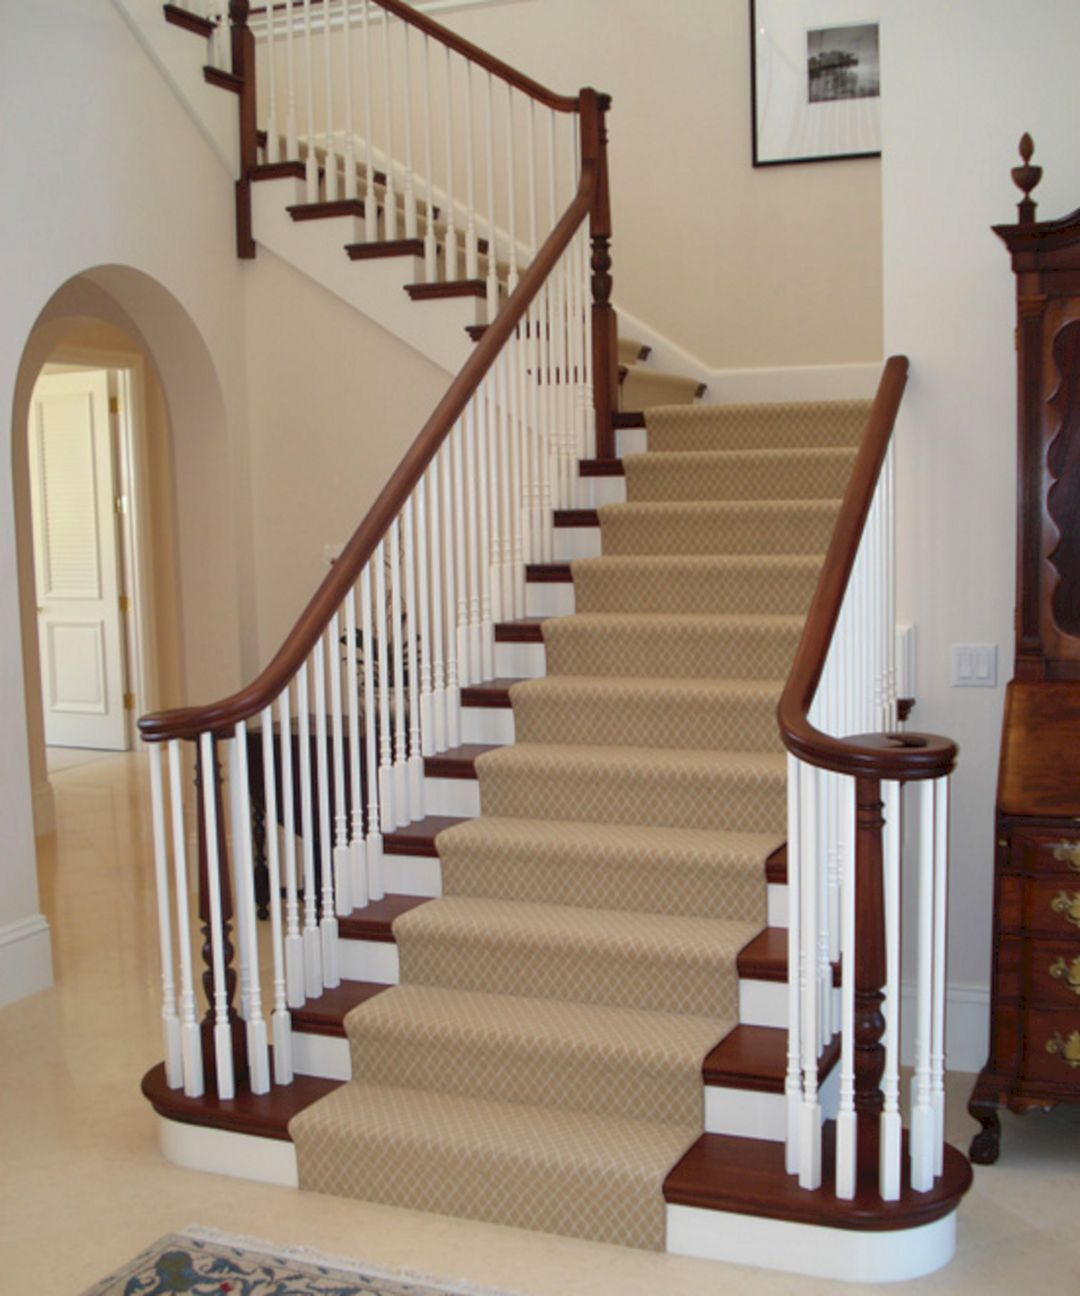 ... Beautiful Stairway Decorating Ideas For Attractive Your Home  Https://decoredo.com/8698 45 Beautiful Stairway Decorating Ideas For  Attractive Your Home/